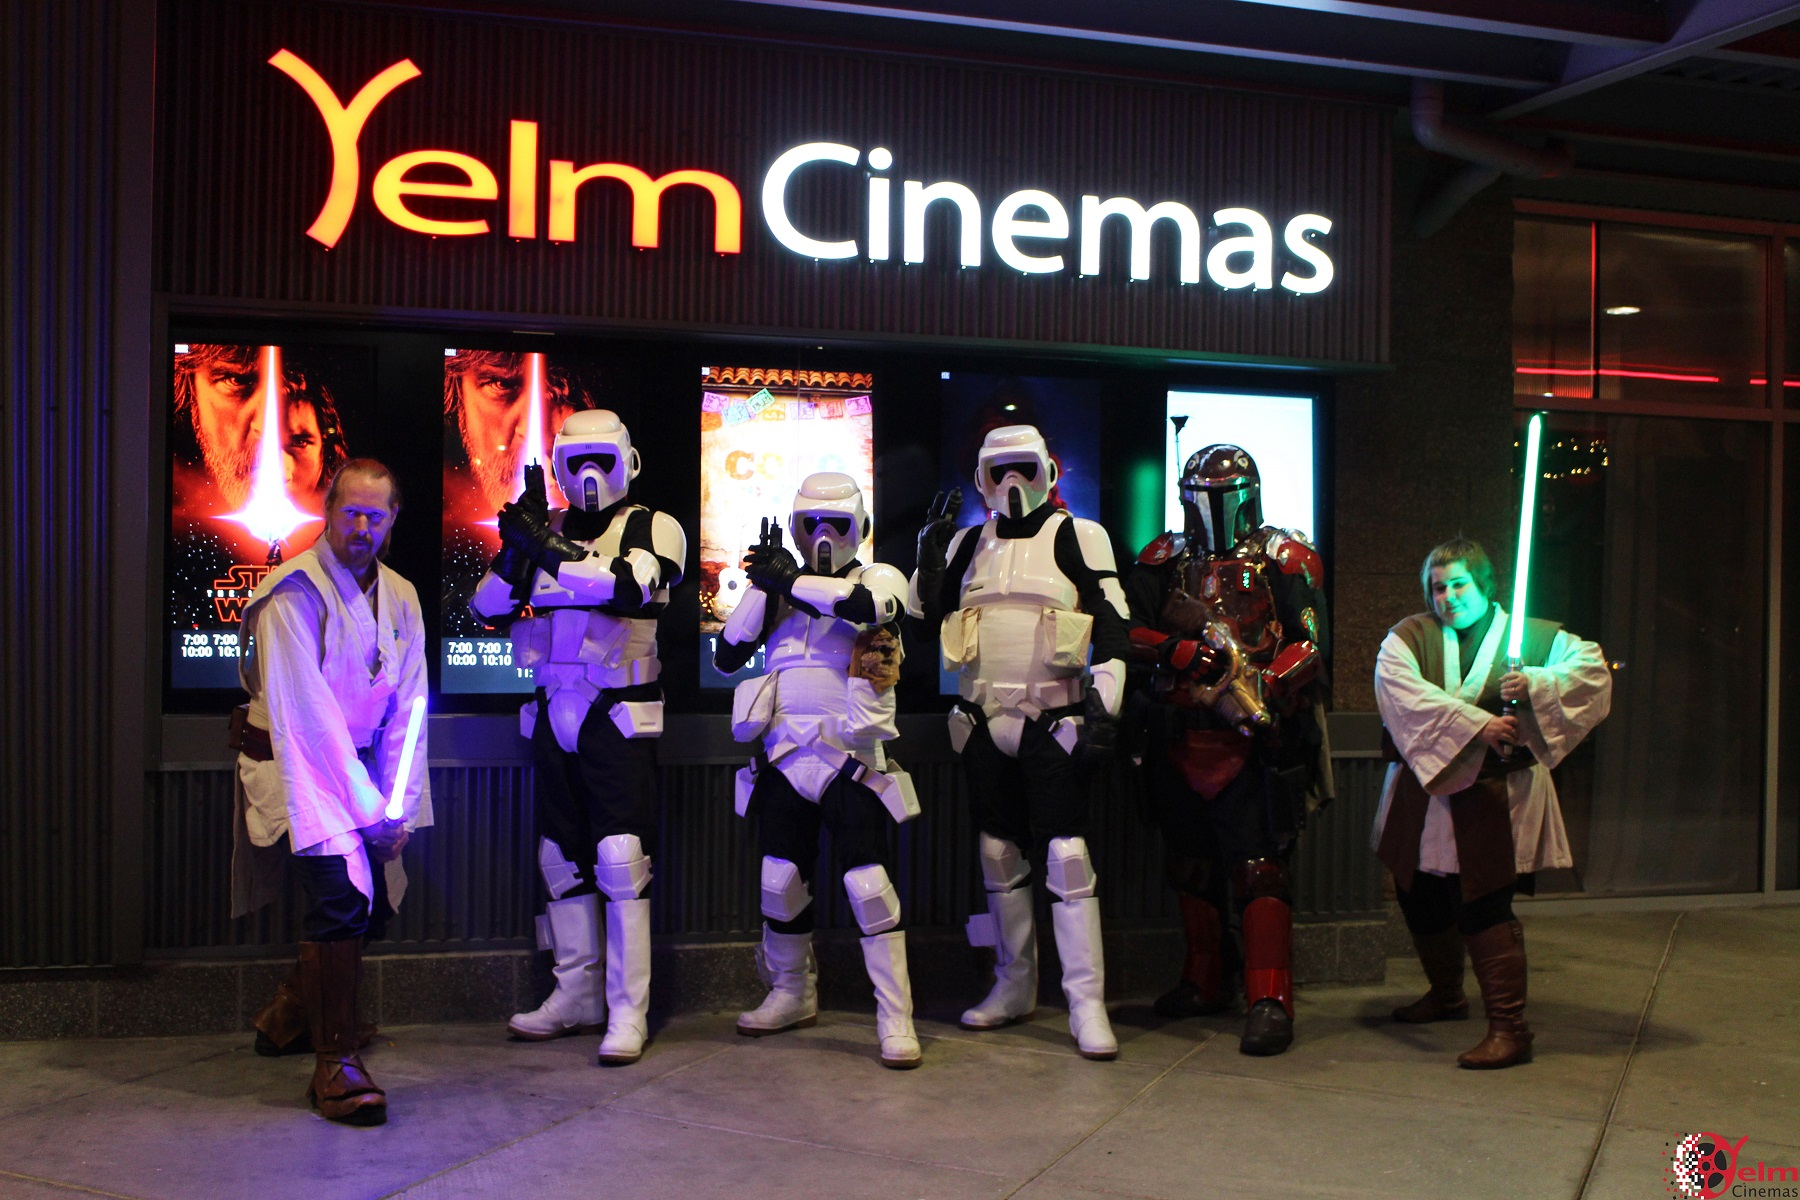 Yelm Cinemas Star Wars Solo Premiere 13 501st Legion